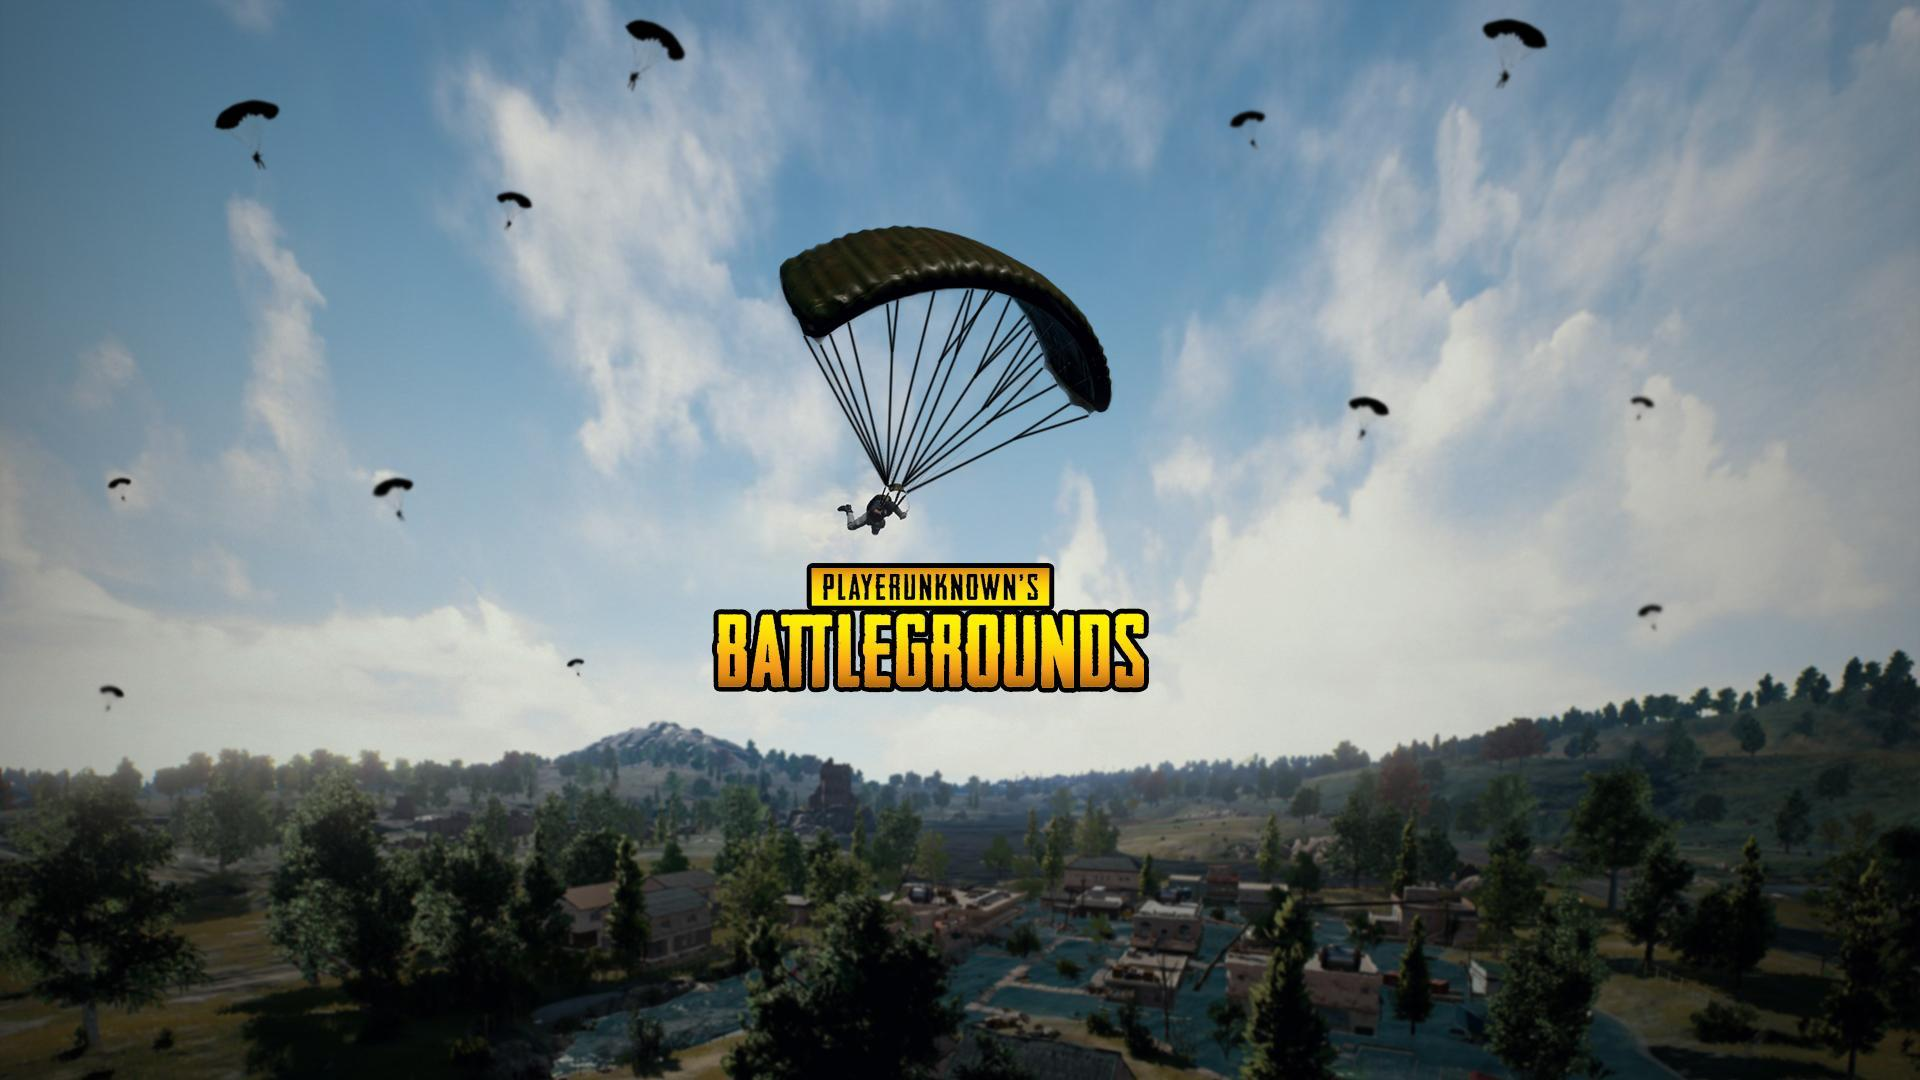 Pubg consumables guide